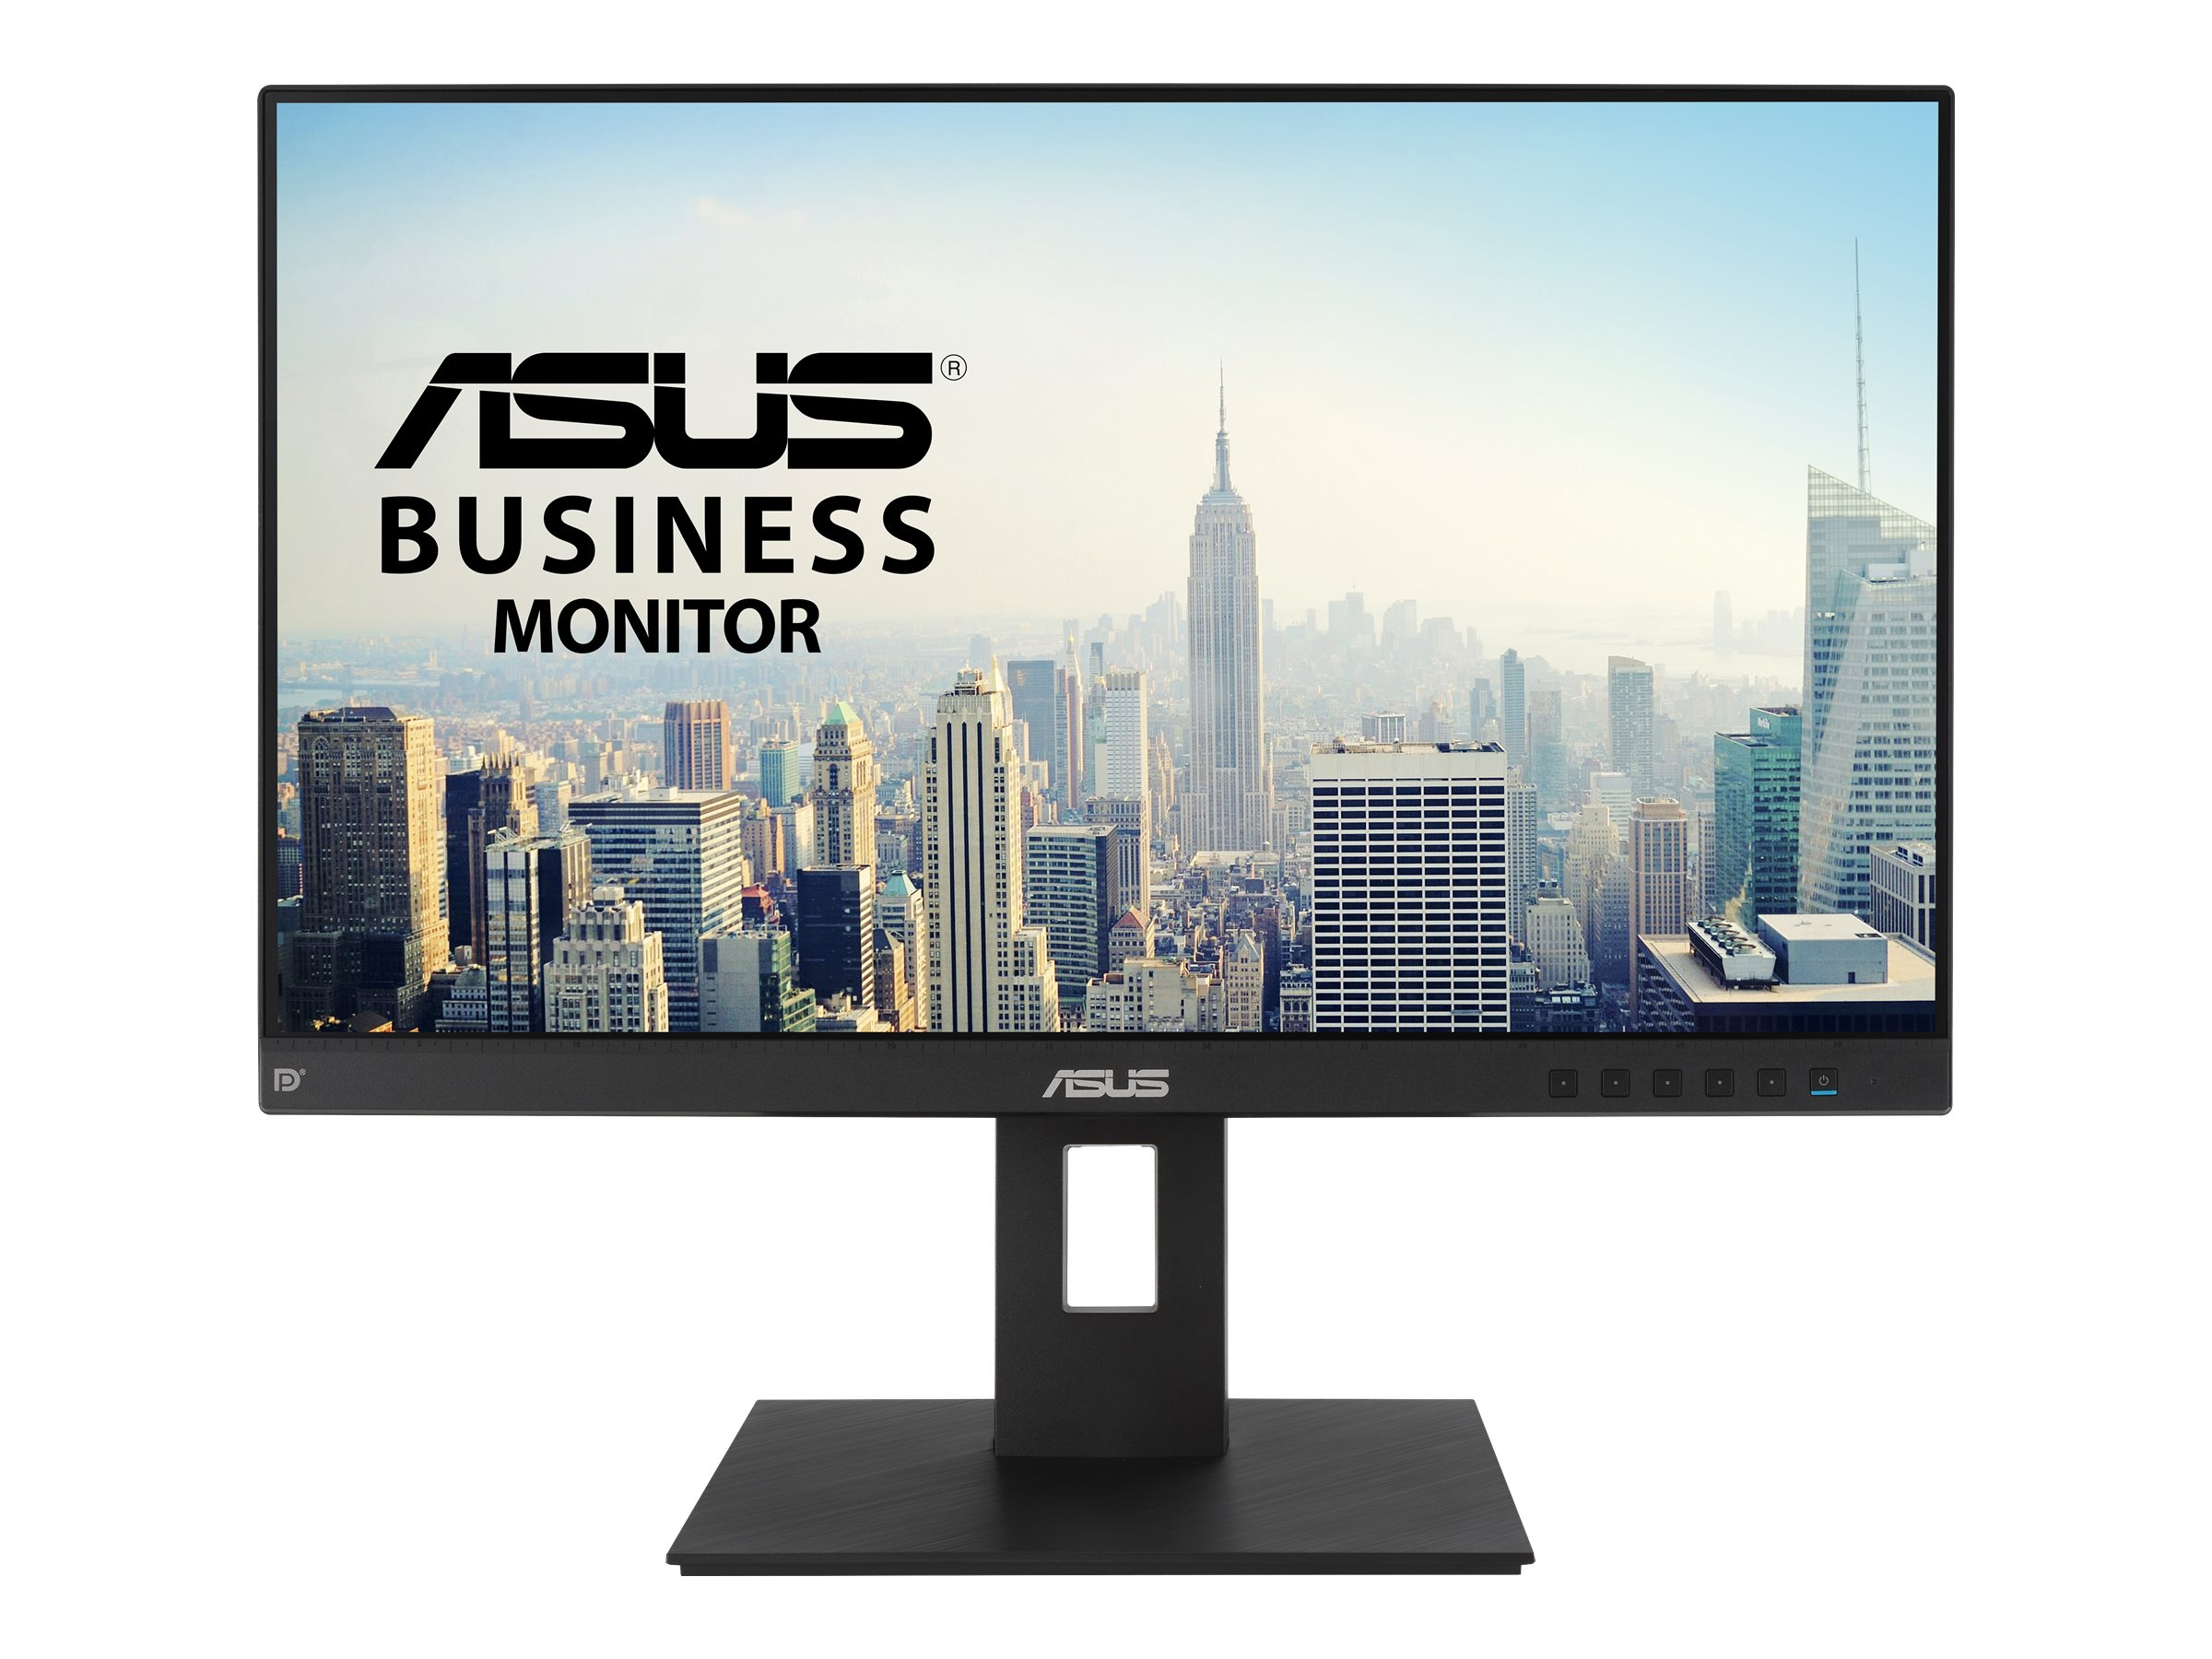 "Vorschau: ASUS BE24EQSB - LED-Monitor - 60.5 cm (23.8"") - 1920 x 1080 Full HD (1080p)"